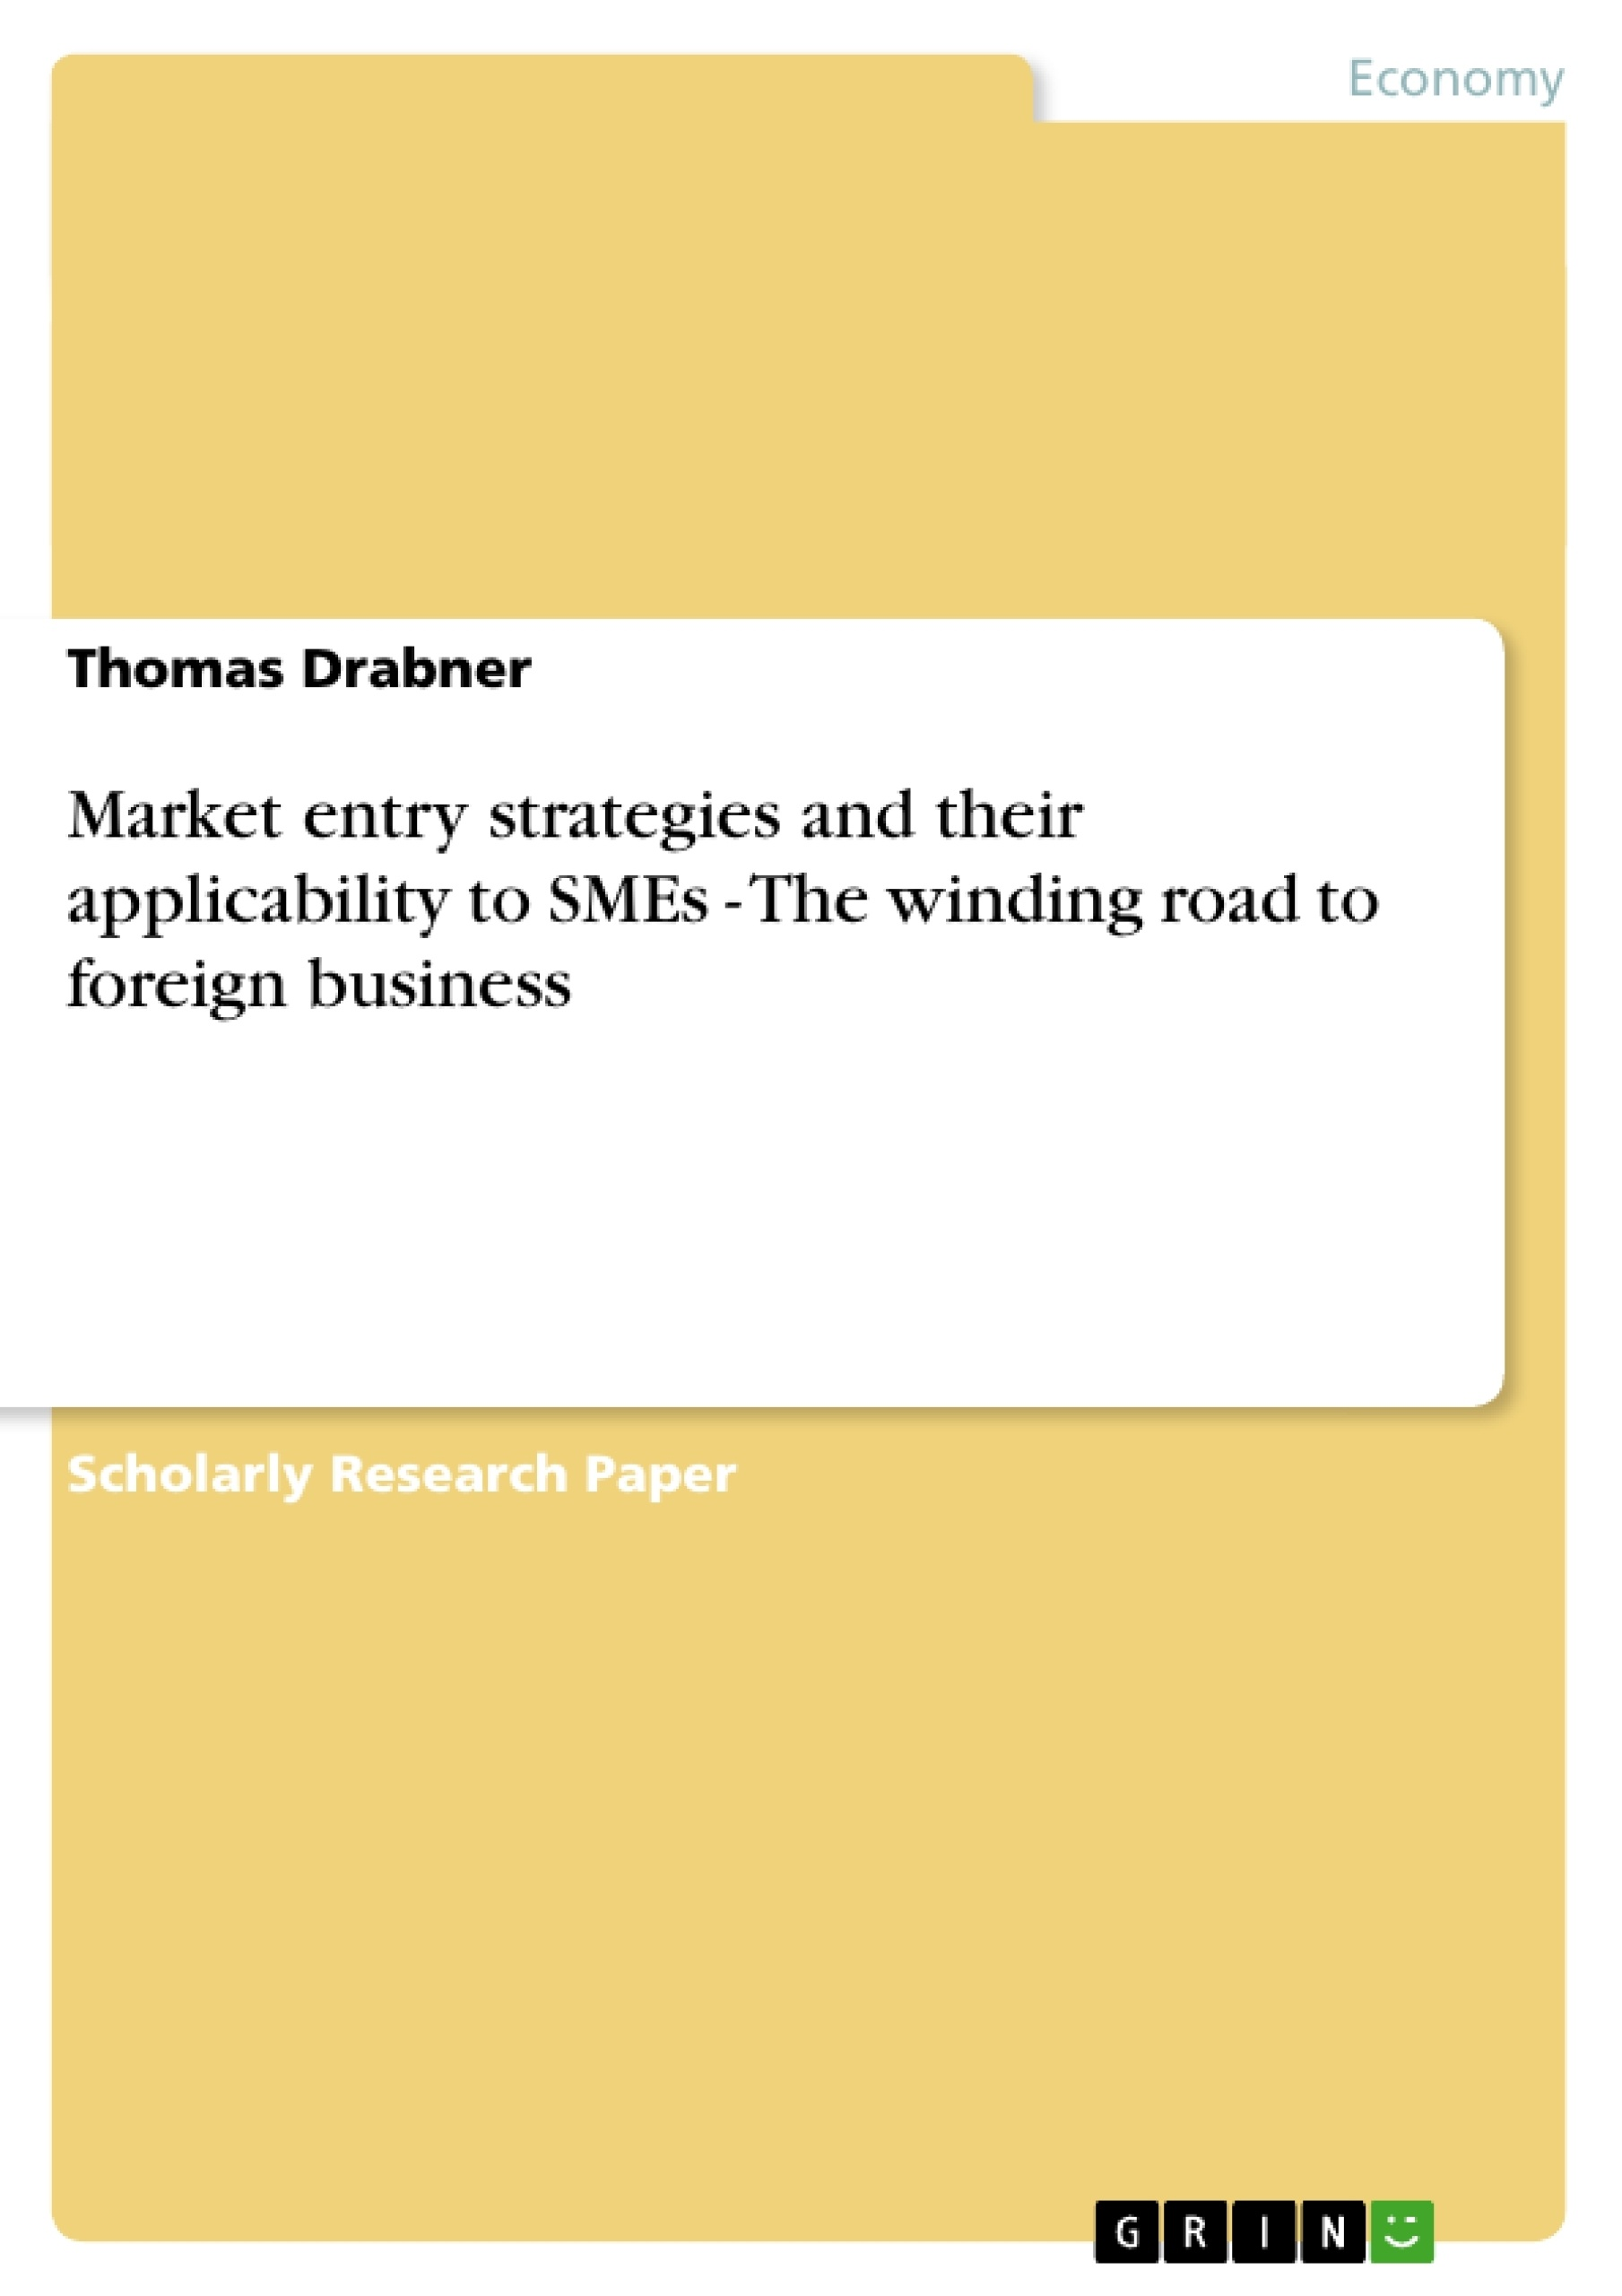 Title: Market entry strategies and their applicability to SMEs - The winding road to foreign business